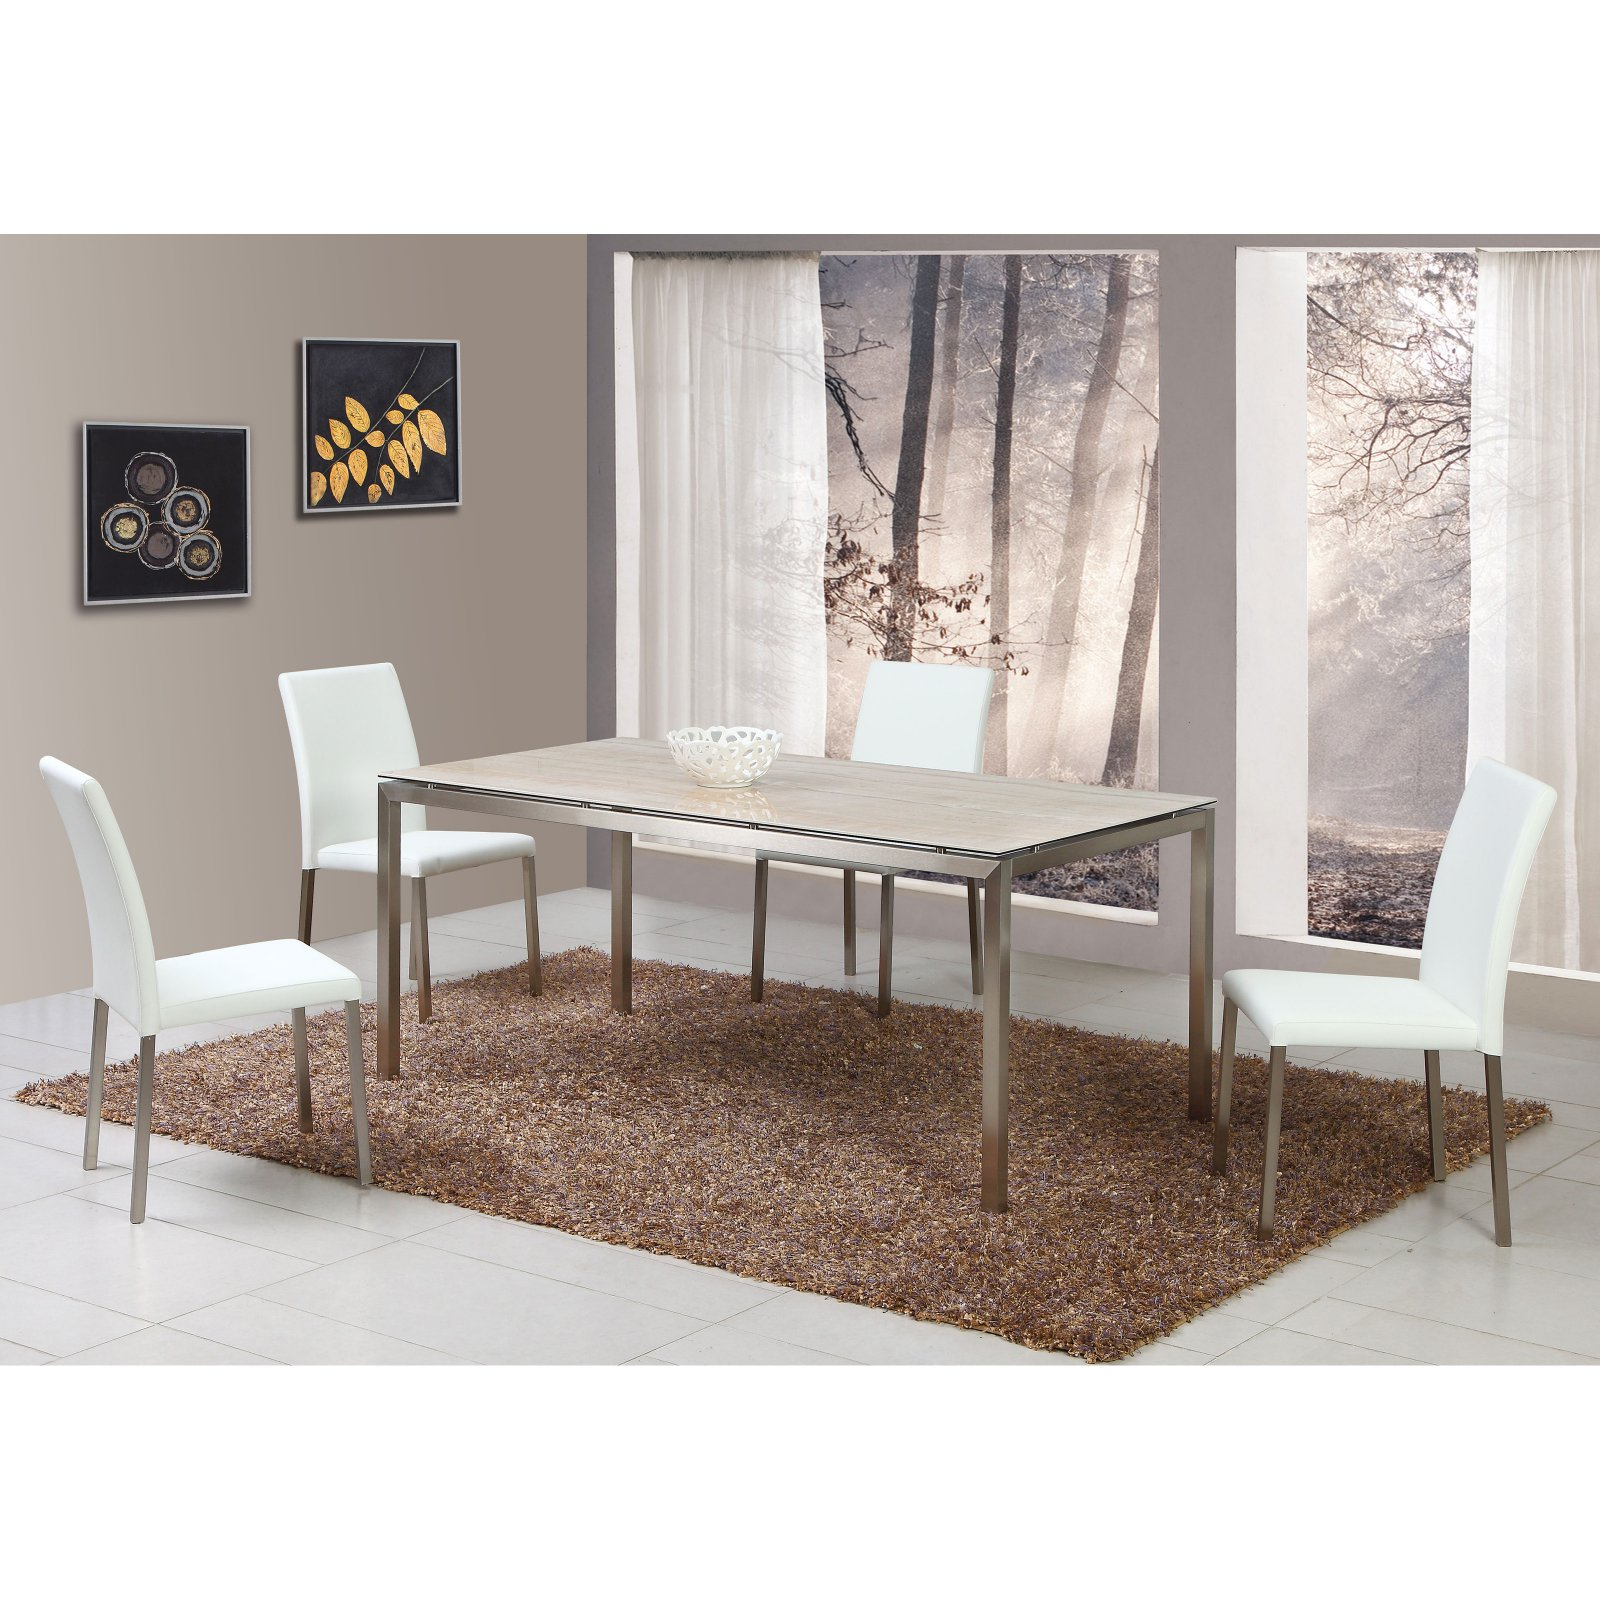 Chintaly Claudia Ceramic Rectangular Dining Table